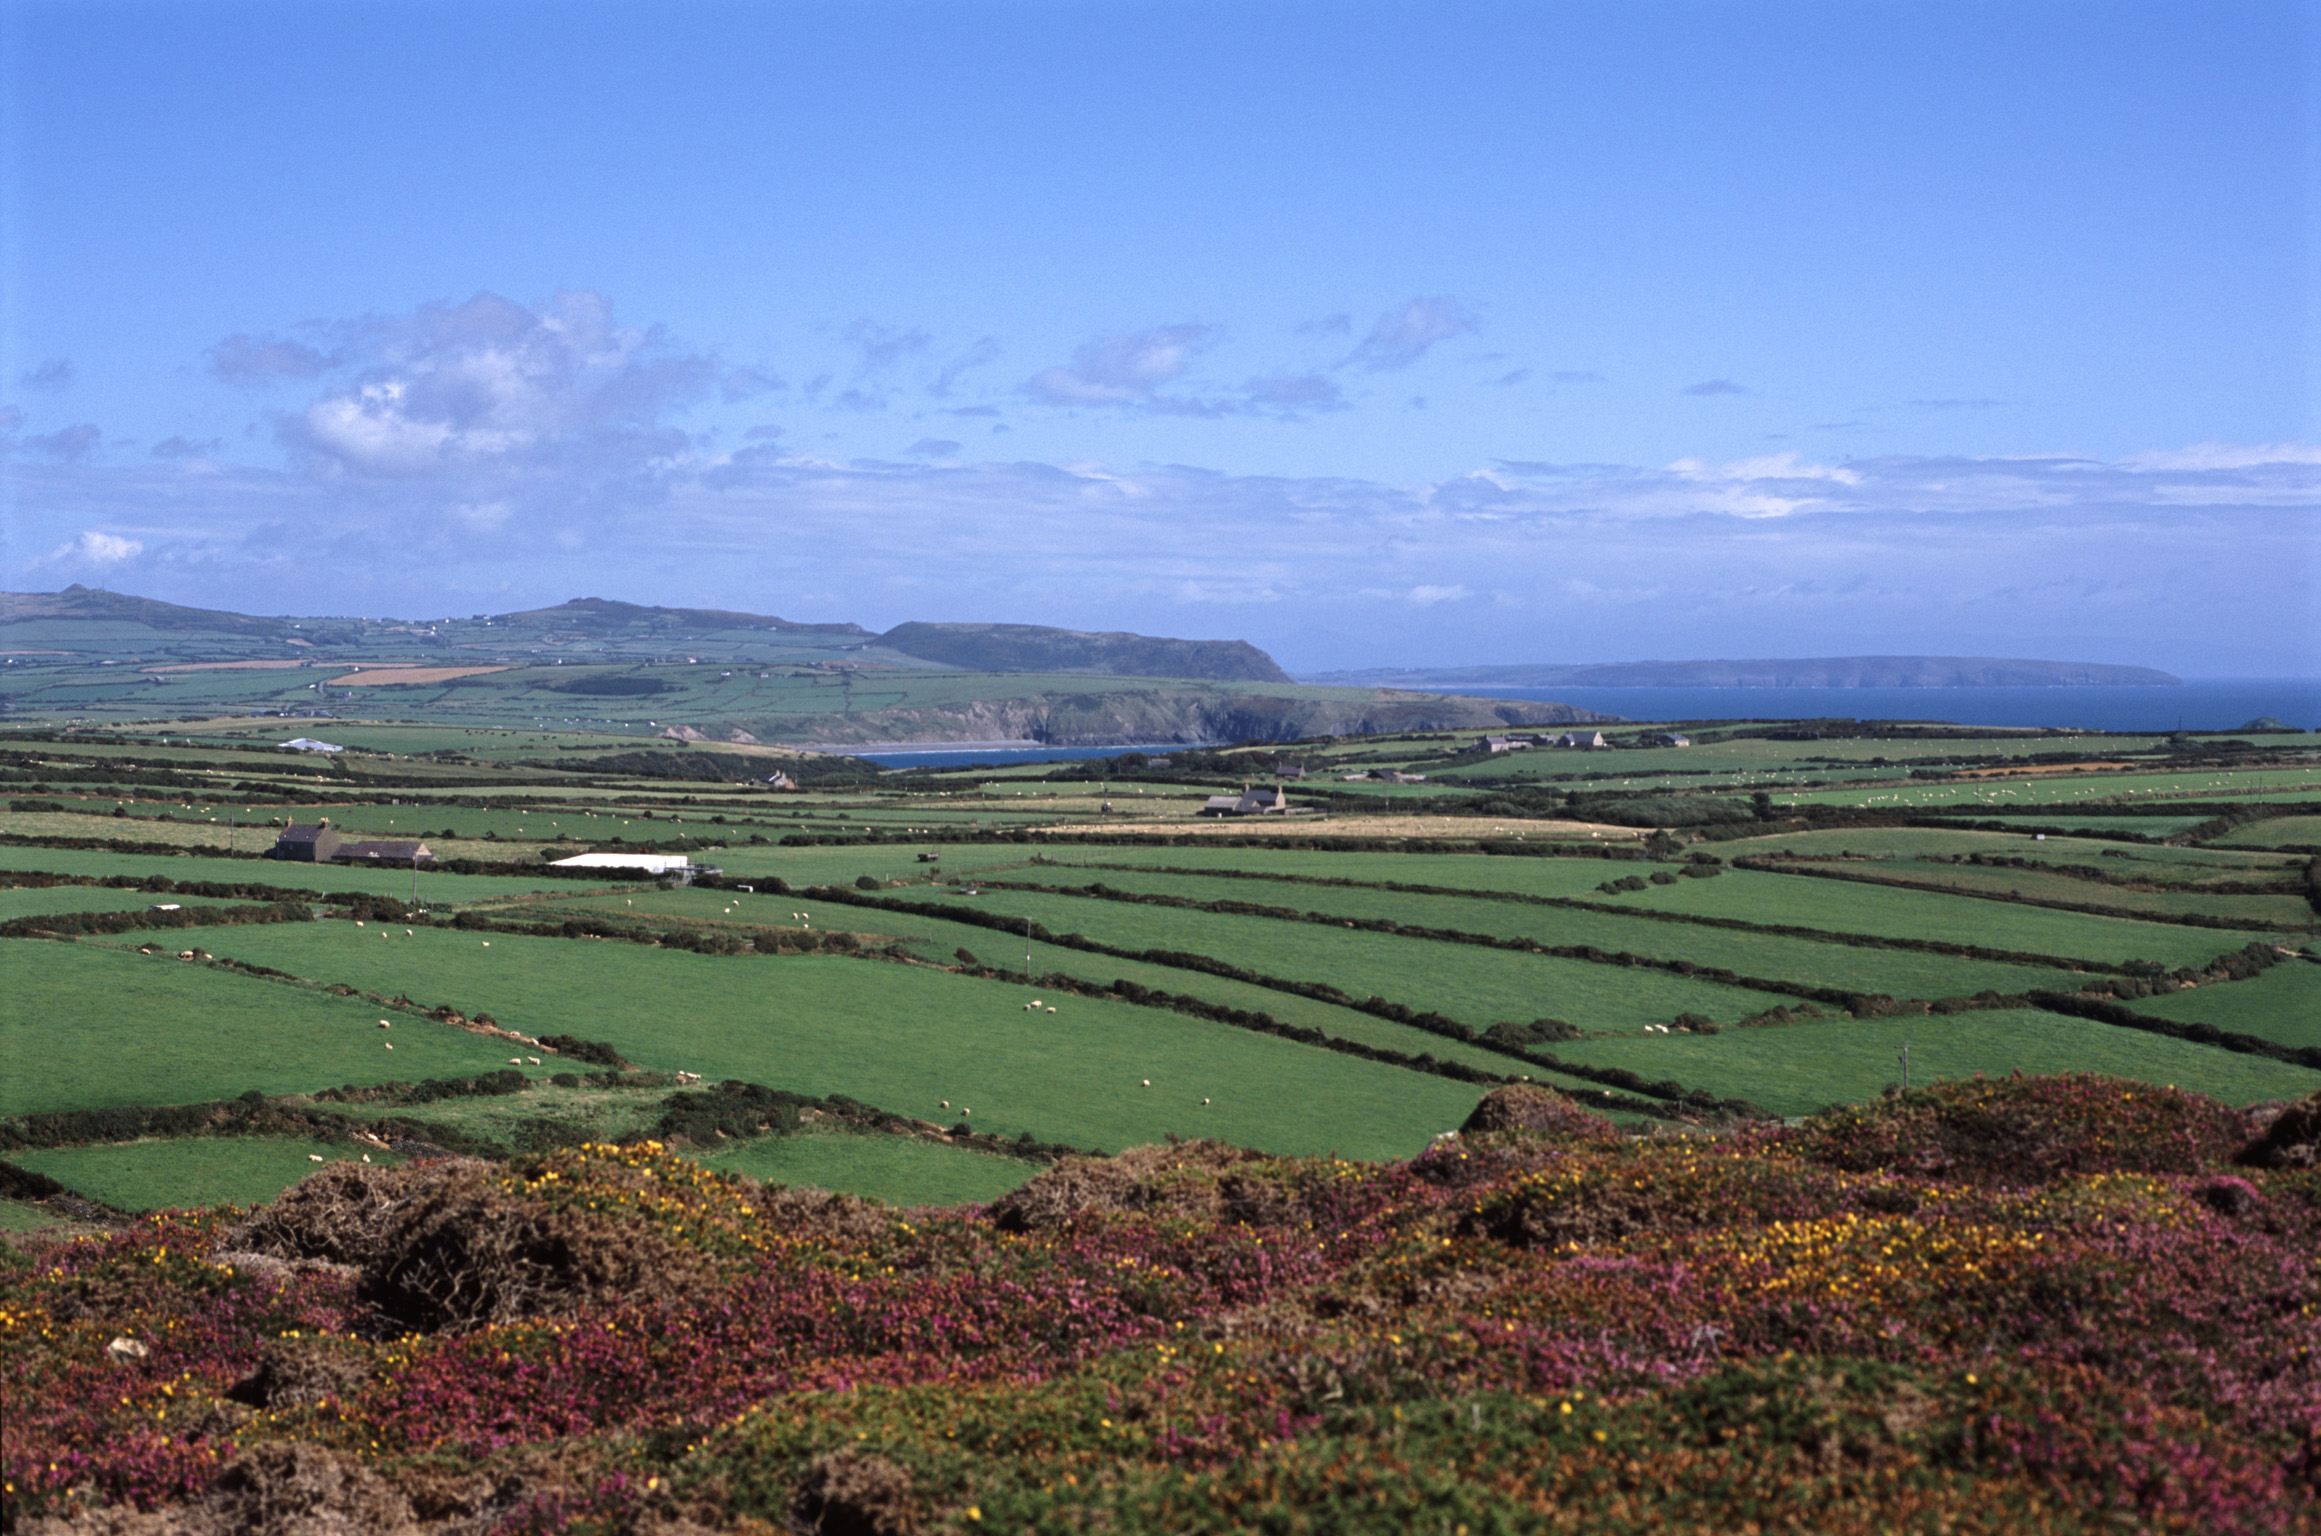 Scenic agricultural landscape with a patchwork of lush green corn fields on the Llyn peninsula overlooking the Irish Sea